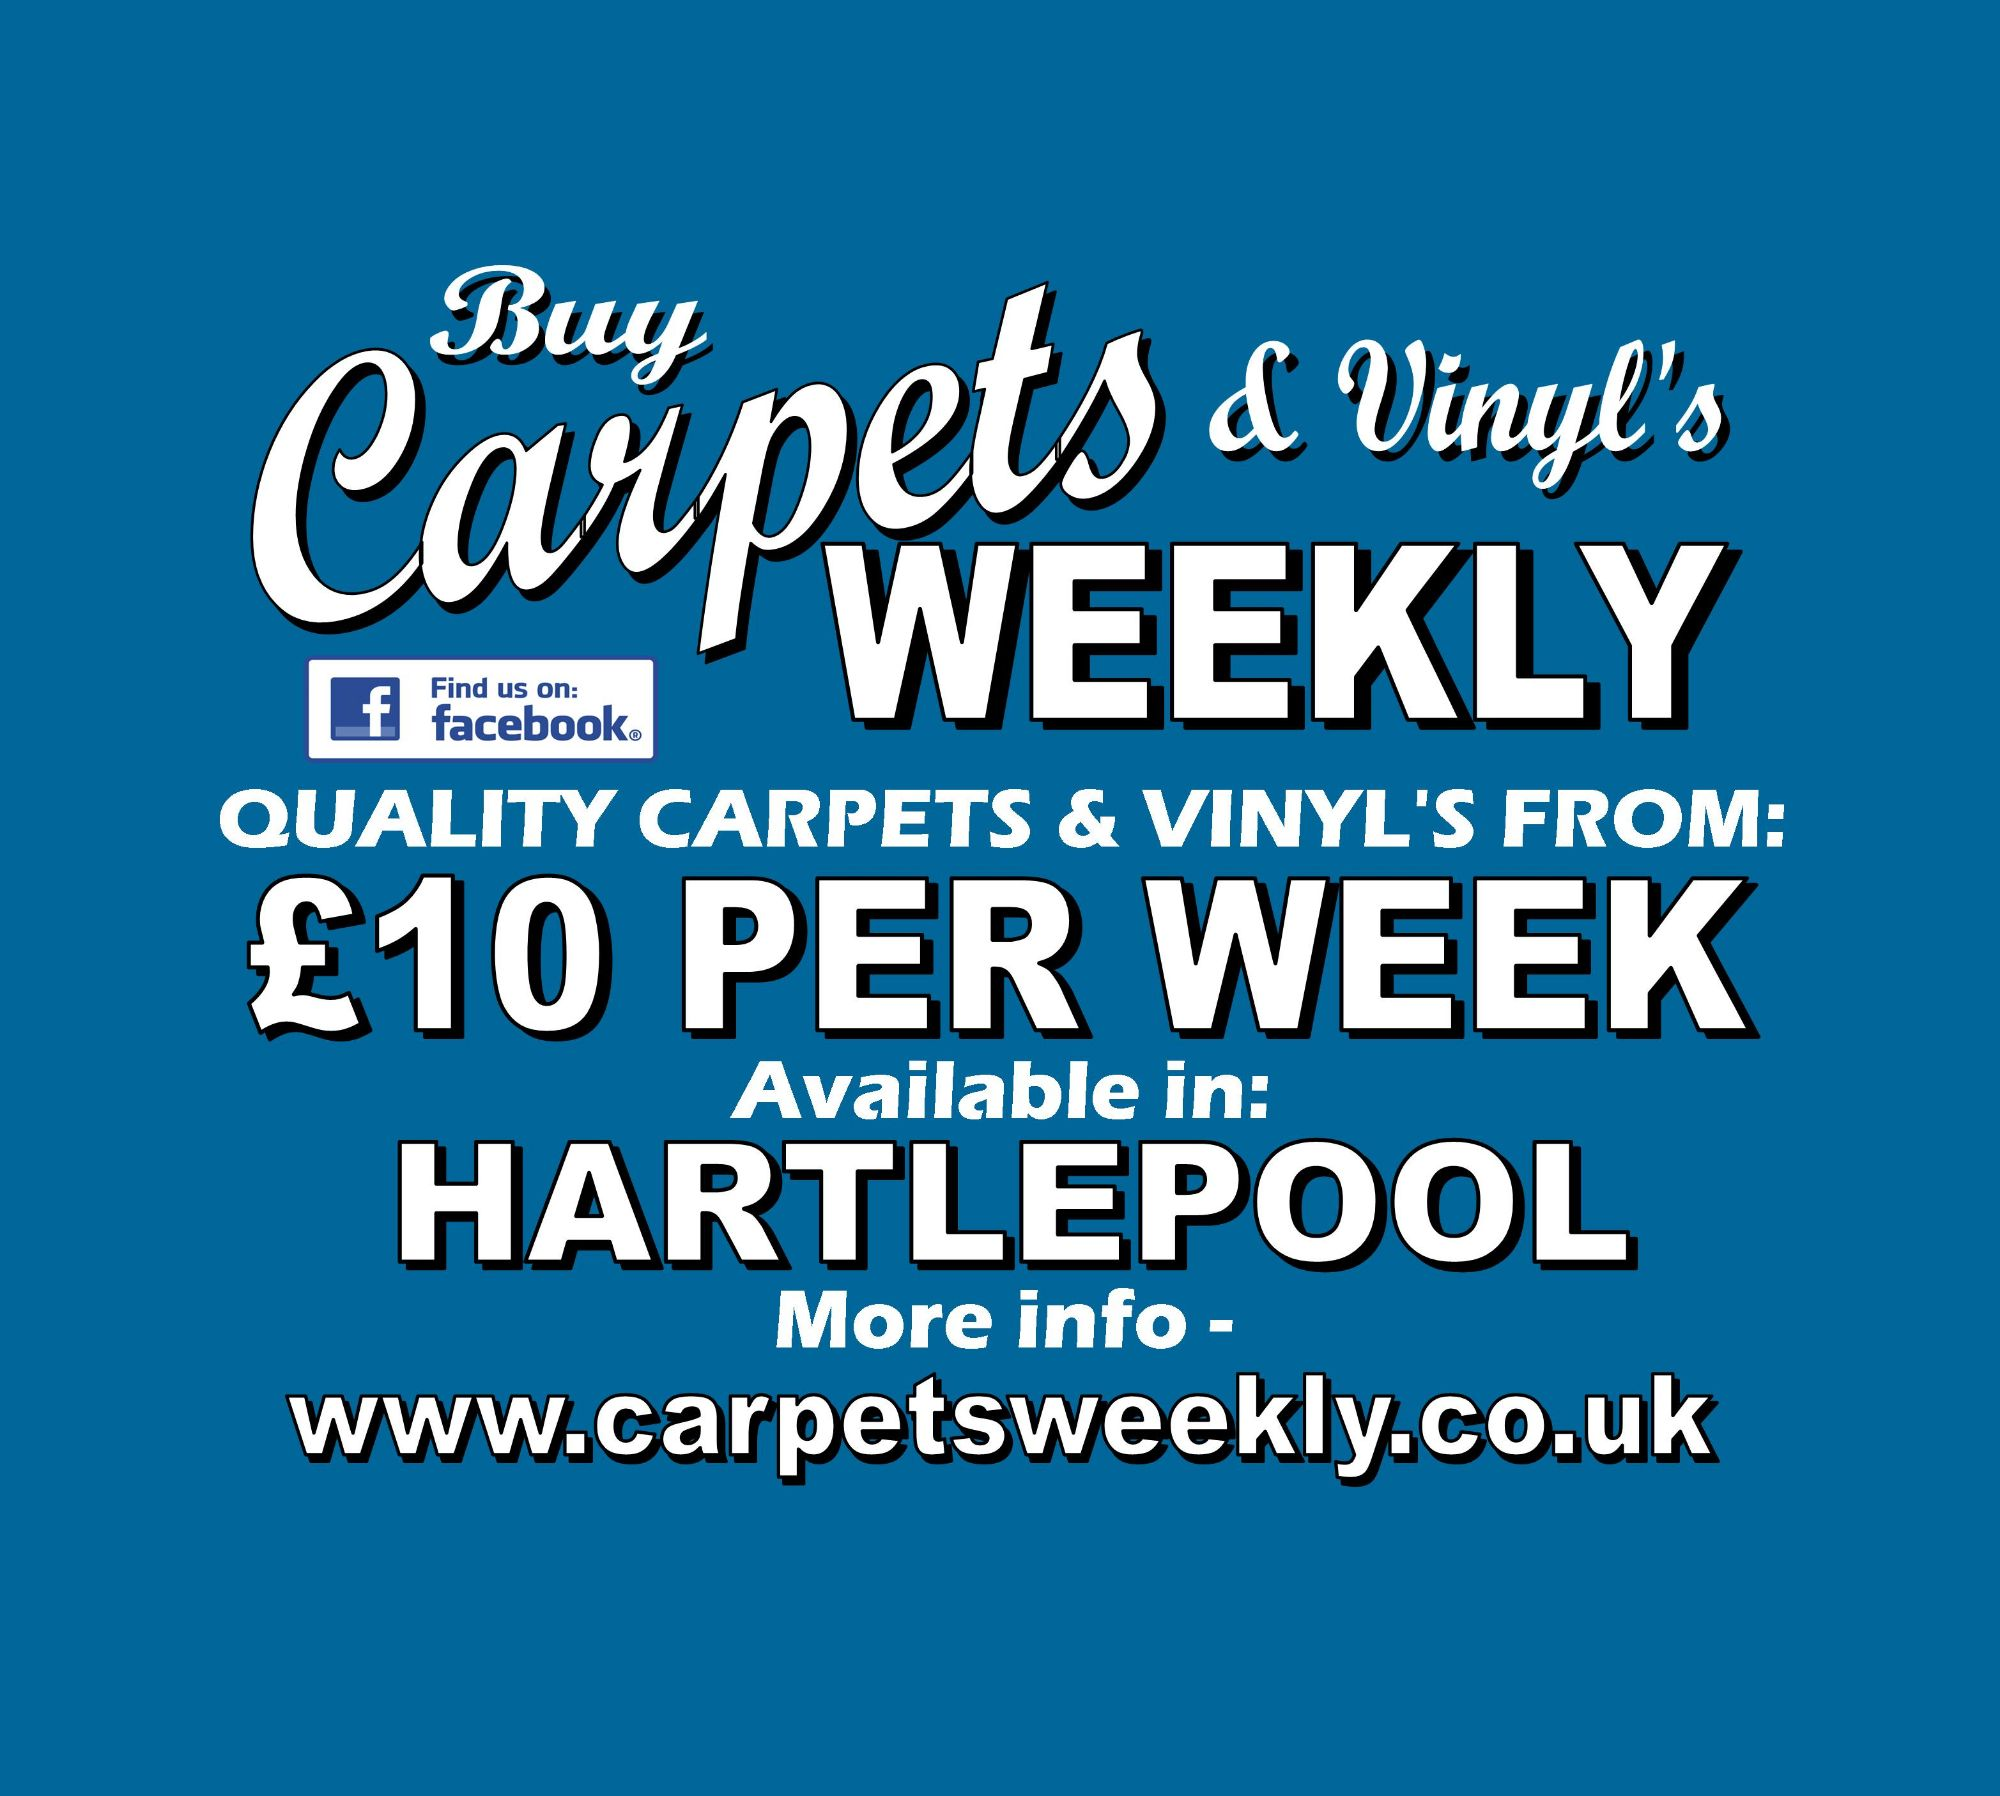 Carpets Weekly available in Hartlepool